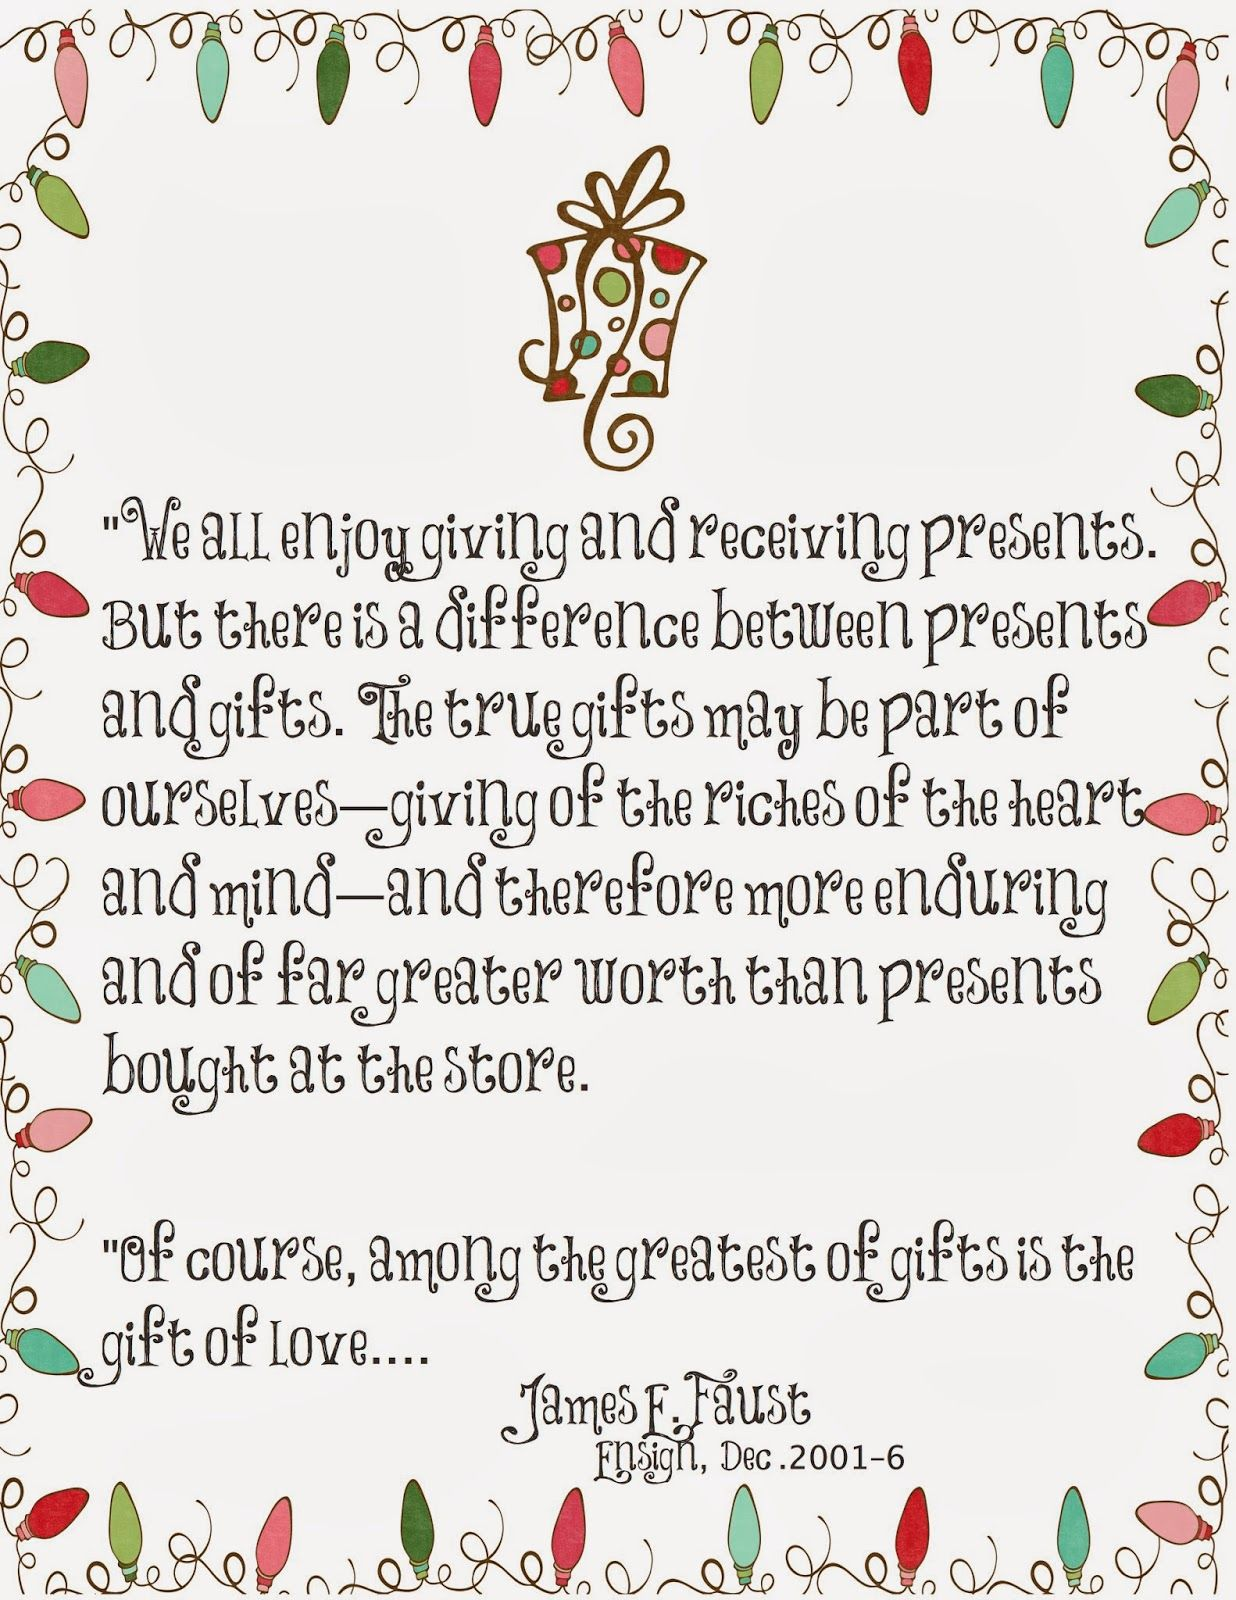 The Greatest Of Gifts Is The Gift Of Love Christmas Gift Quotes Christmas Quotes Merry Christmas Quotes